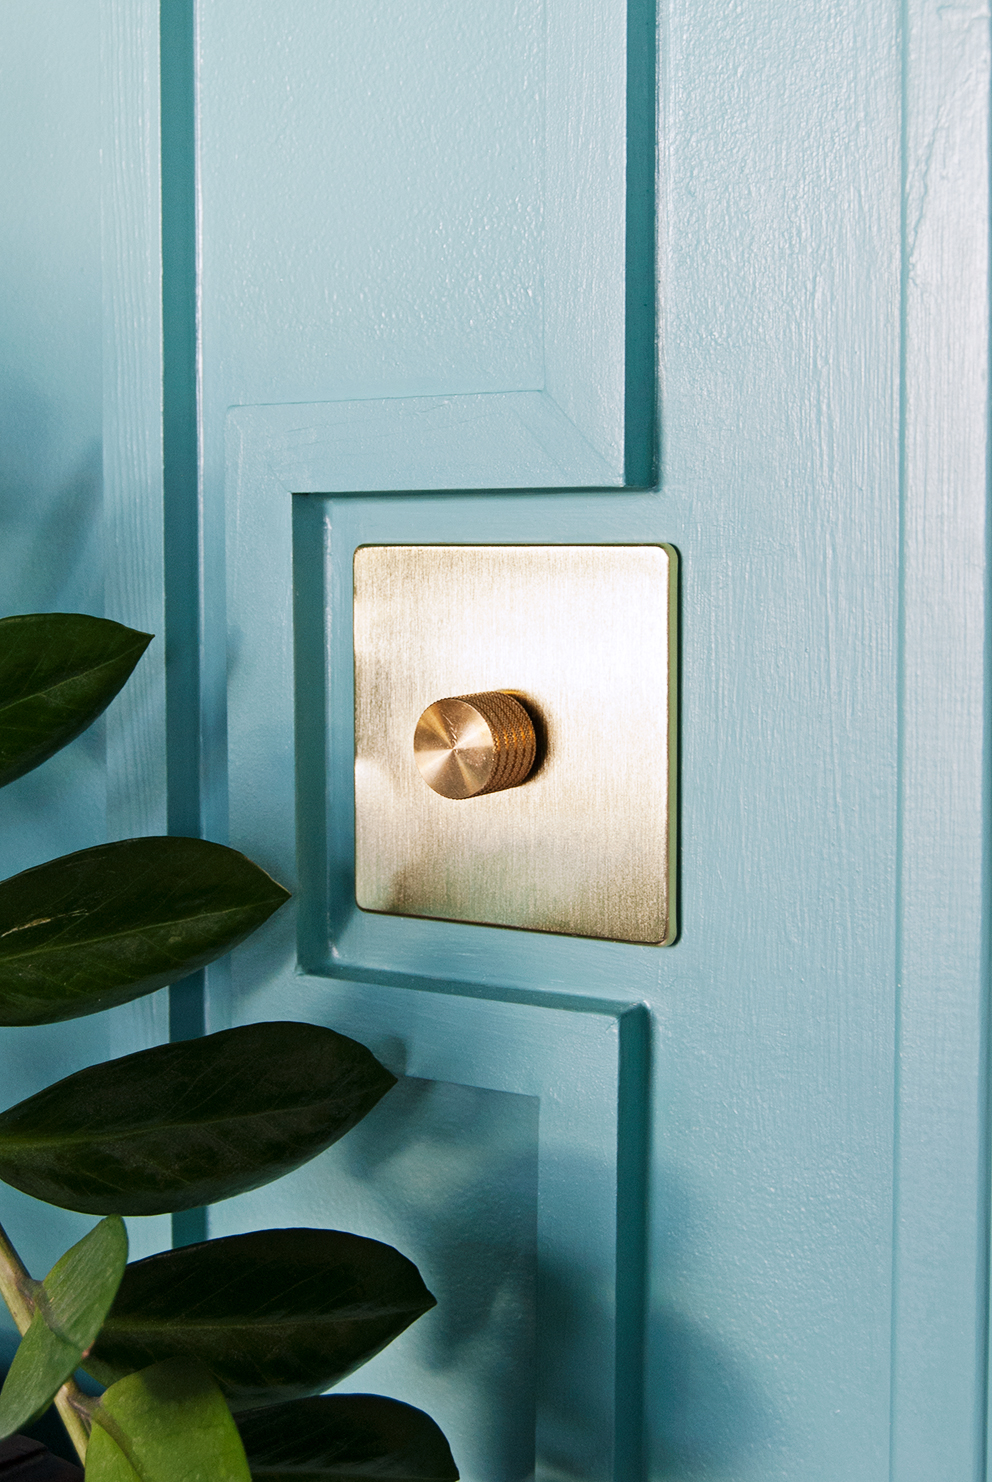 Family TV Room Reveal - French For Pineapple Blog - Decorative Wall Moulding with Brass Light Switch